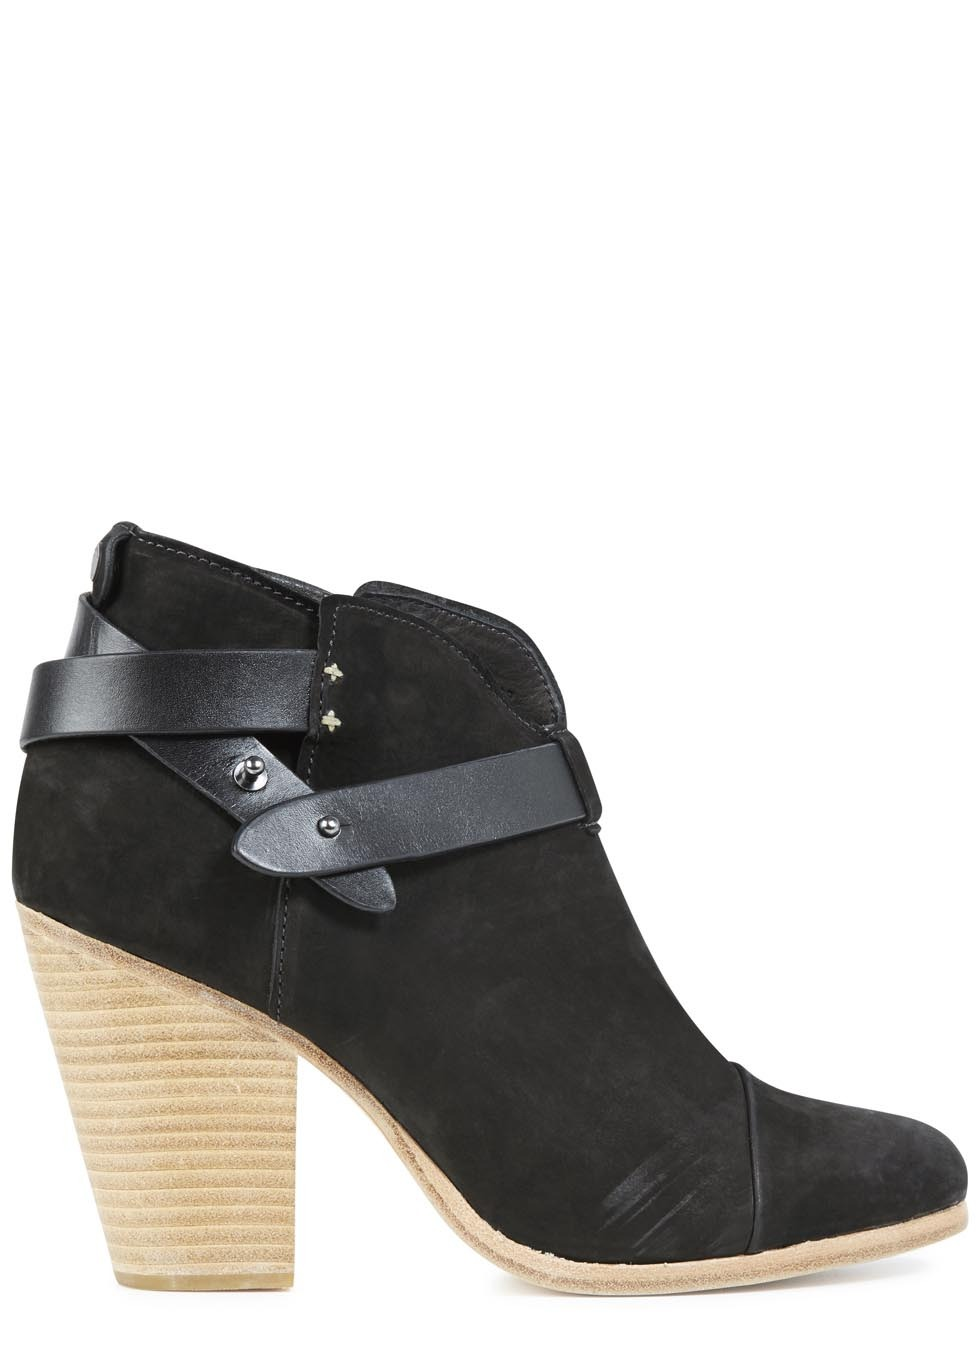 Harrow Black Suede Ankle Boots - predominant colour: black; occasions: casual; material: suede; heel height: high; heel: block; toe: round toe; boot length: ankle boot; style: standard; finish: plain; pattern: plain; season: s/s 2014